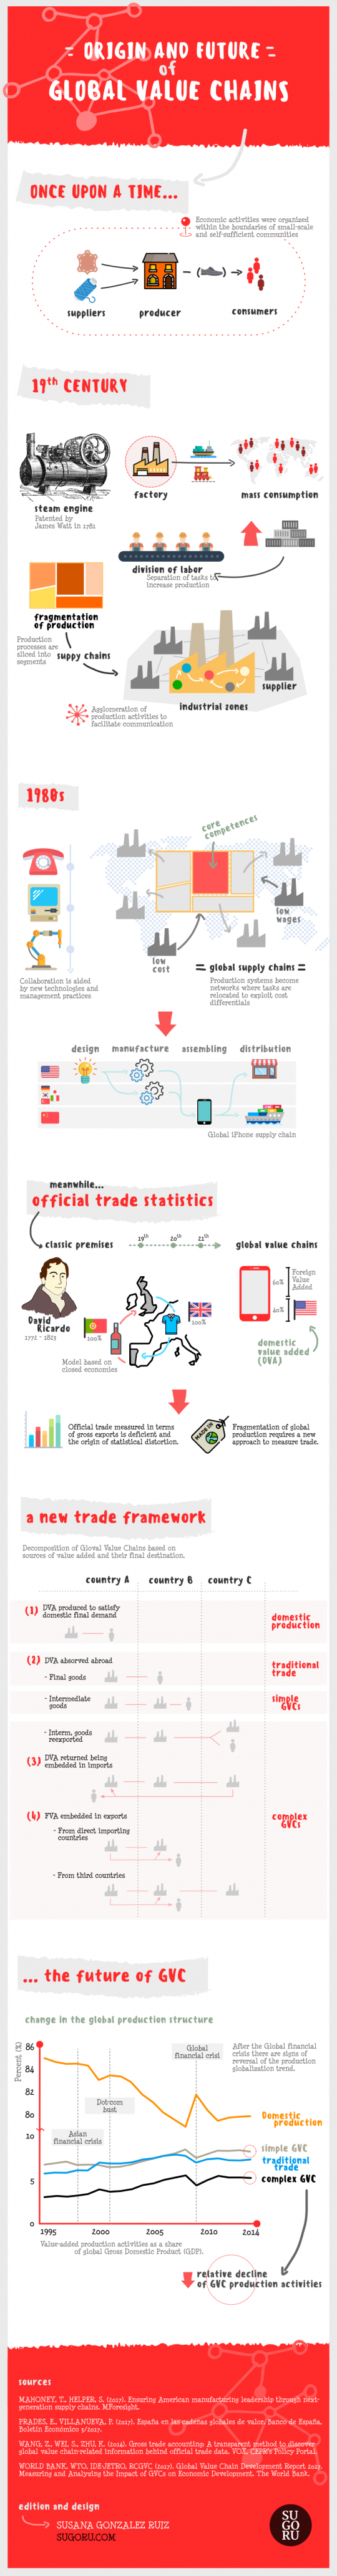 Origin and Future of Global Value Chains